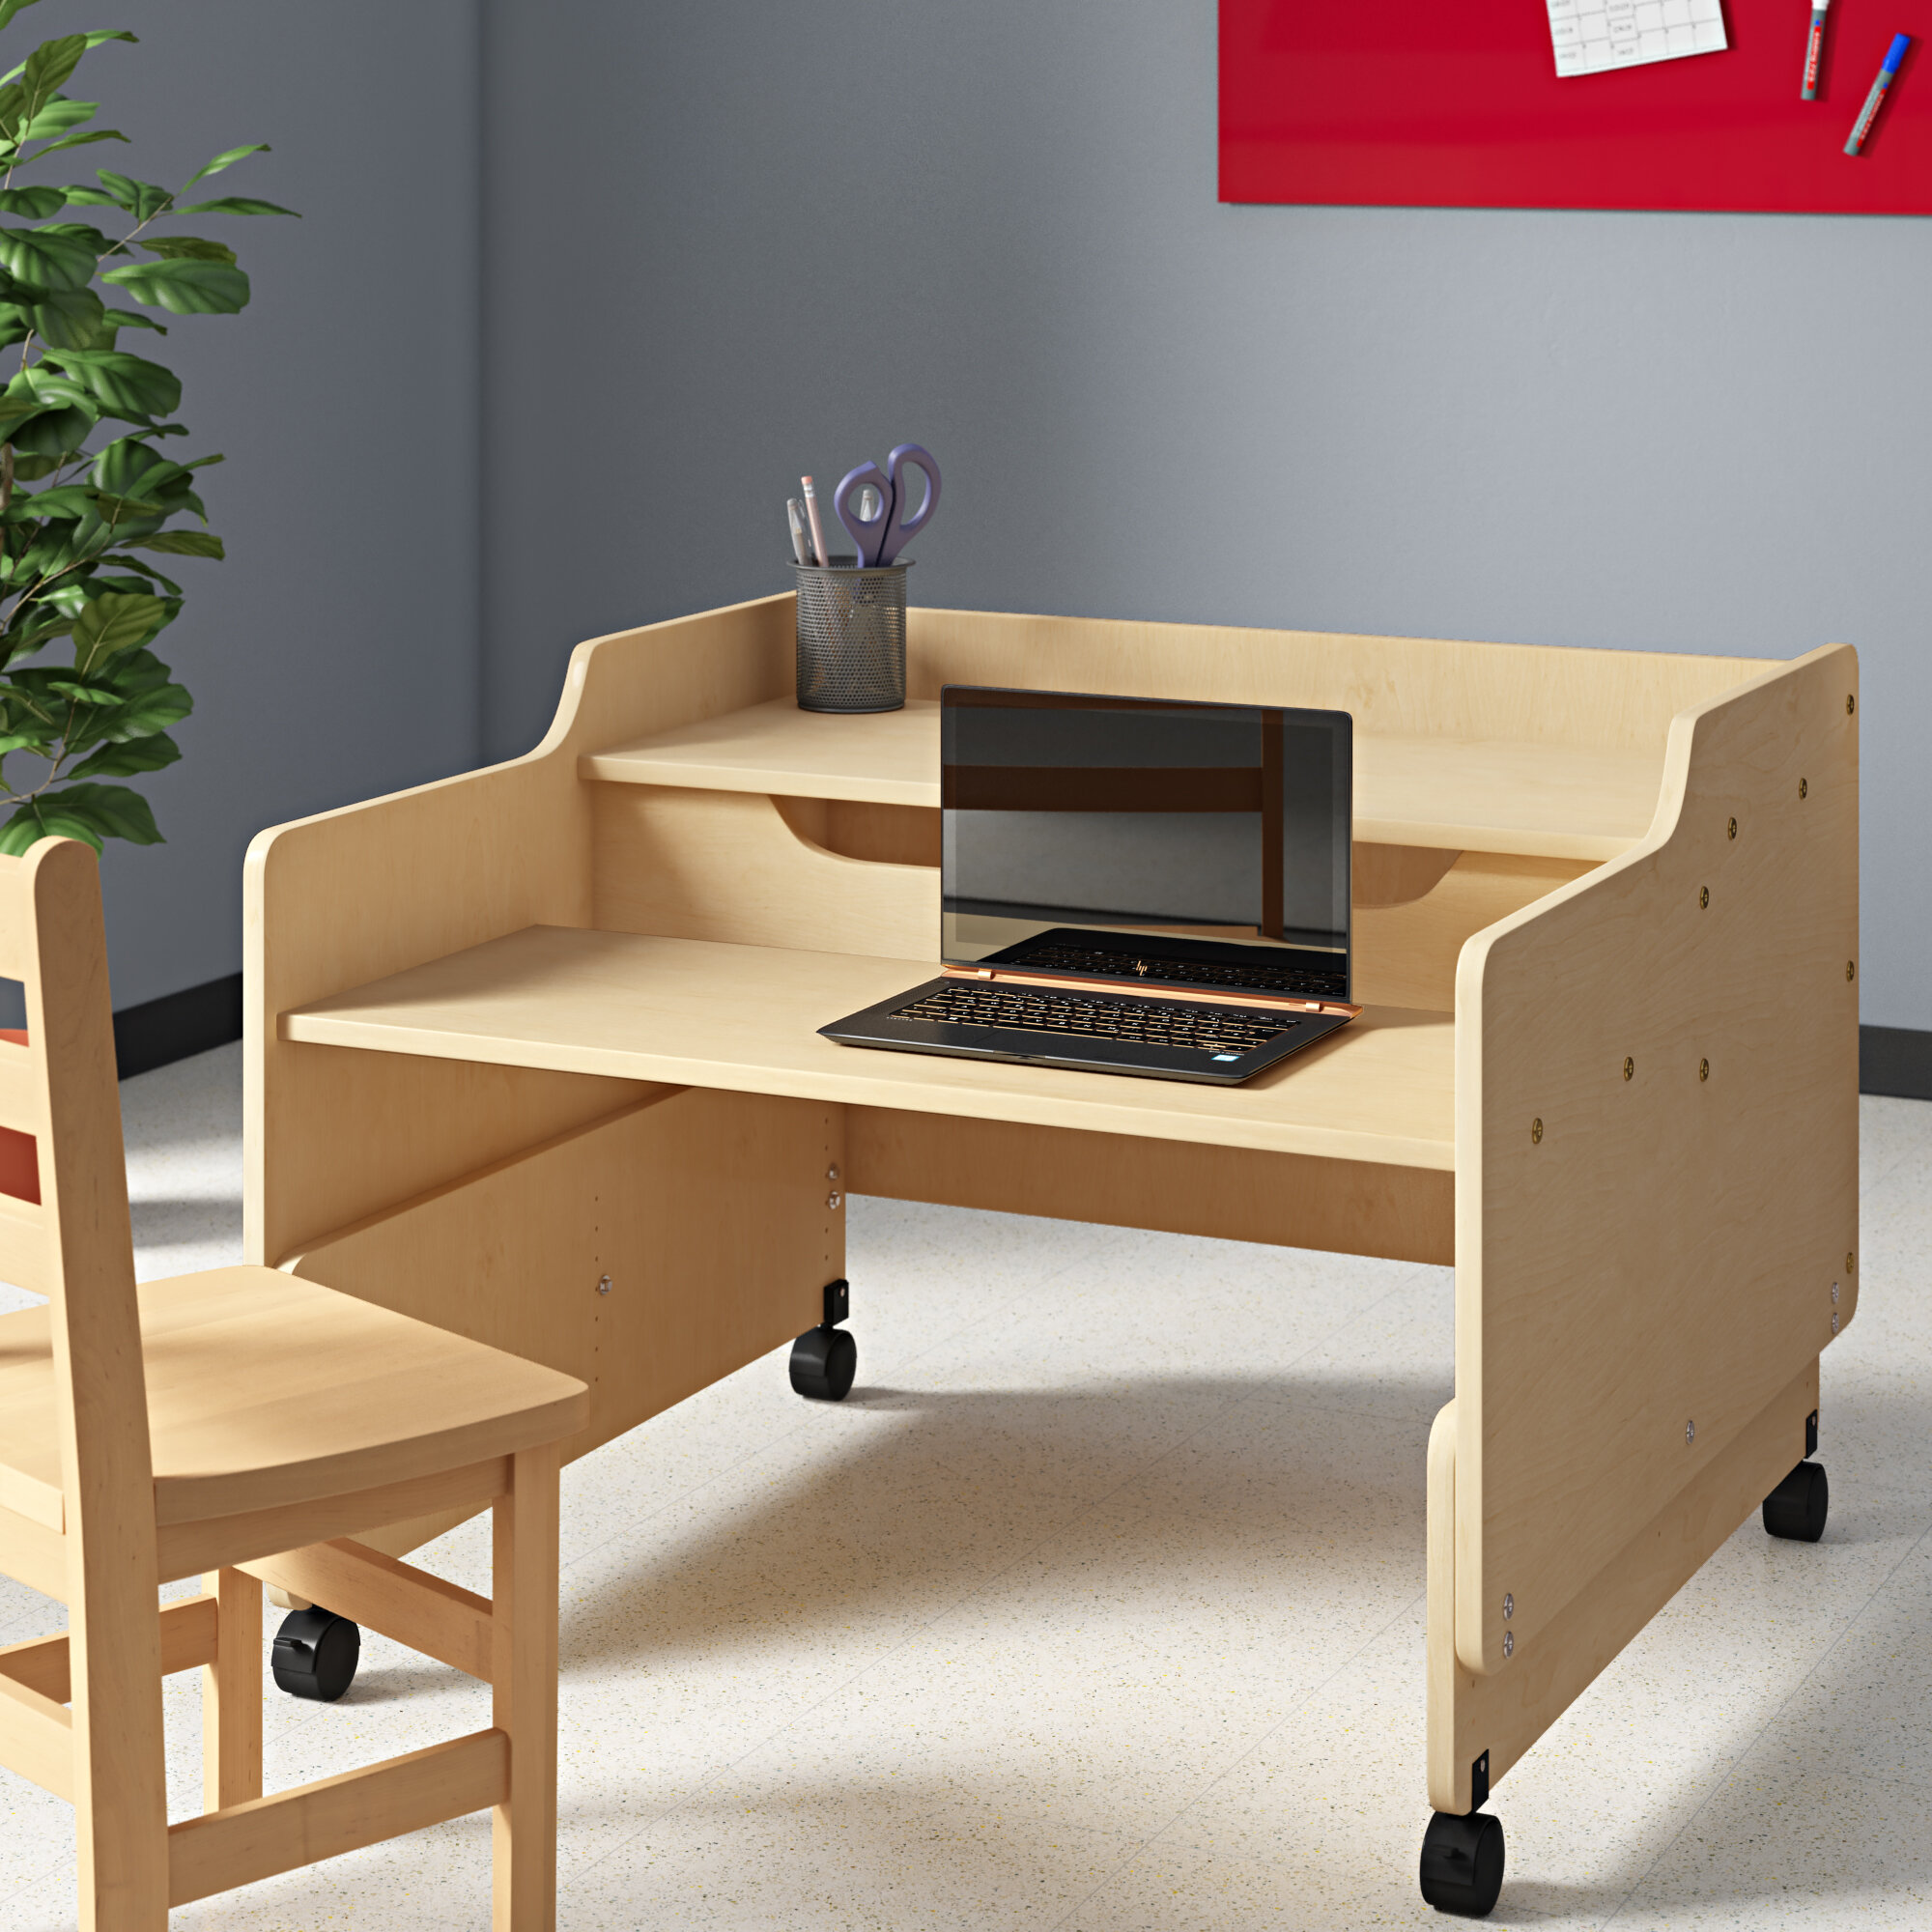 Wood Designs Contender Wood Adjustable Height Student Computer Desk Wayfair Ca